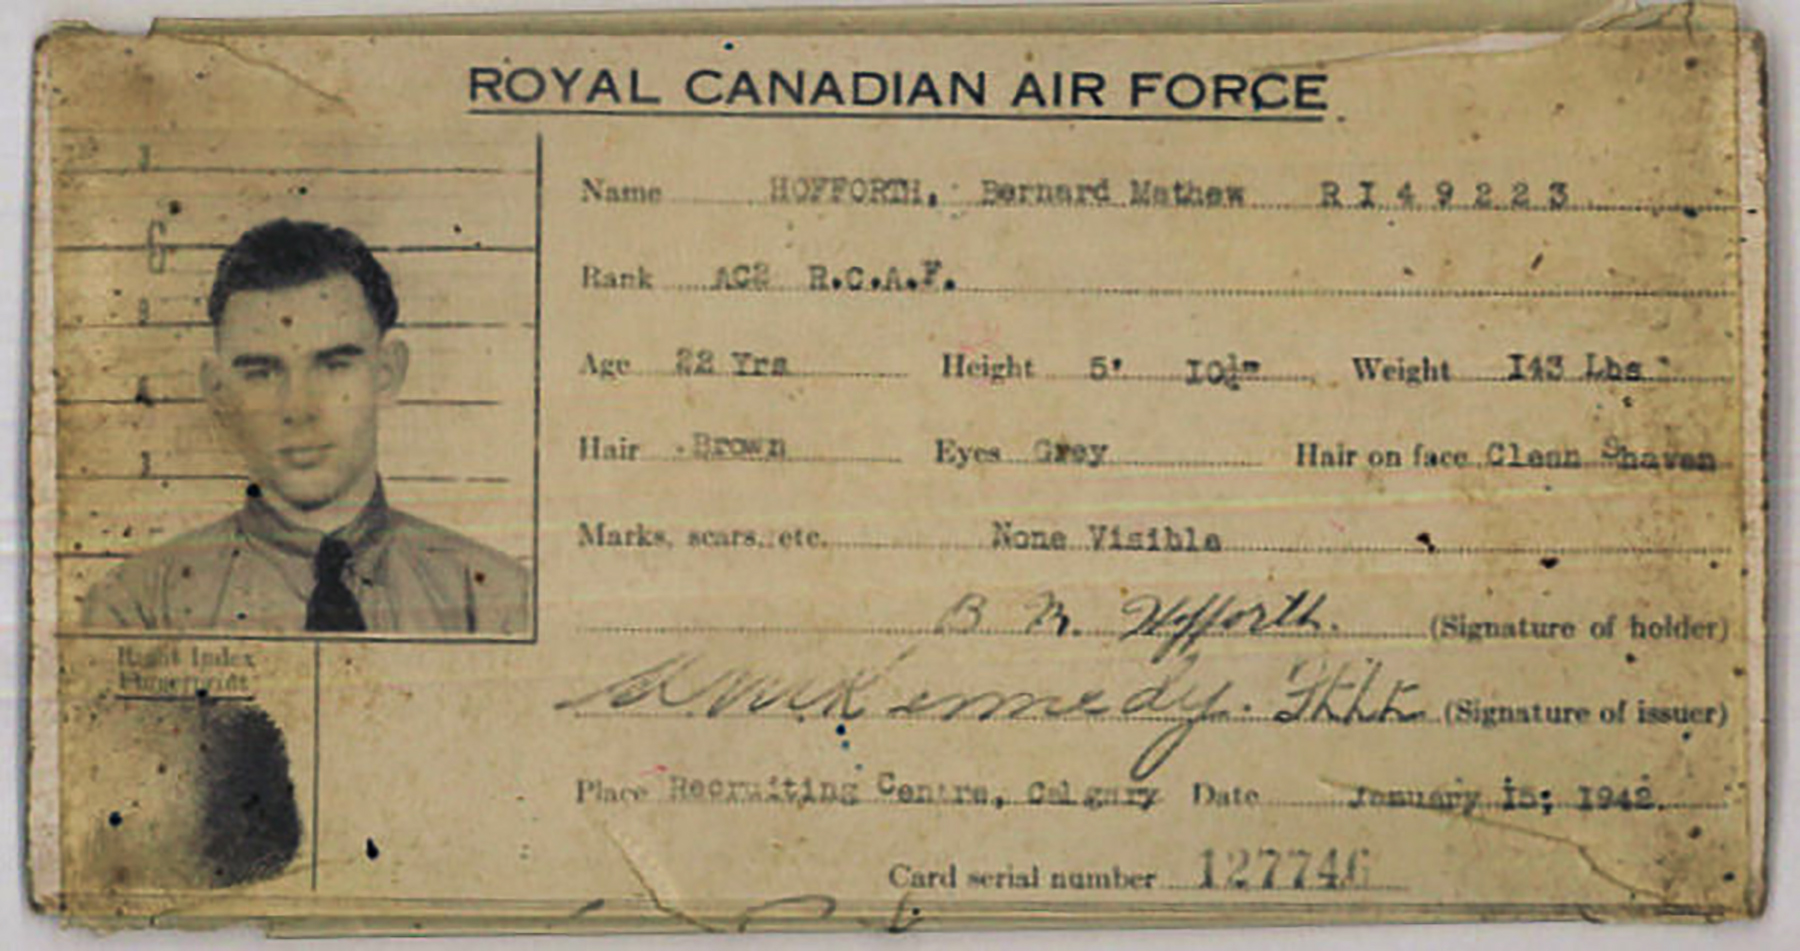 "RCAF Sergeant Bernard Mathew Hofforth was killed when Lancaster II DS-634 crashed at 01:30 west of Spieka, Germany, on July 29, 1944. The text on the pictured identification card reads: ROYAL CANADIAN AIR FORCE; Name: HOFFORTH, Bernard Mathew RI49223; Rank: AC2 R.C.A.F.; Age: 22 Yrs; Height: 5' 10½""; Weight: 145 Lbs; Hair: Brown; Eyes: grey; Hair on face: Clean Shaven; Marks. Scars, etc.: None Visible; B.M. Hofforth (Signature of holder); A.M. Kennedy Ft. Lt. (Signature of issuer) Place: Recruiting Centre, Calgary; Date: January 15, 1942; Card serial number: 127746 